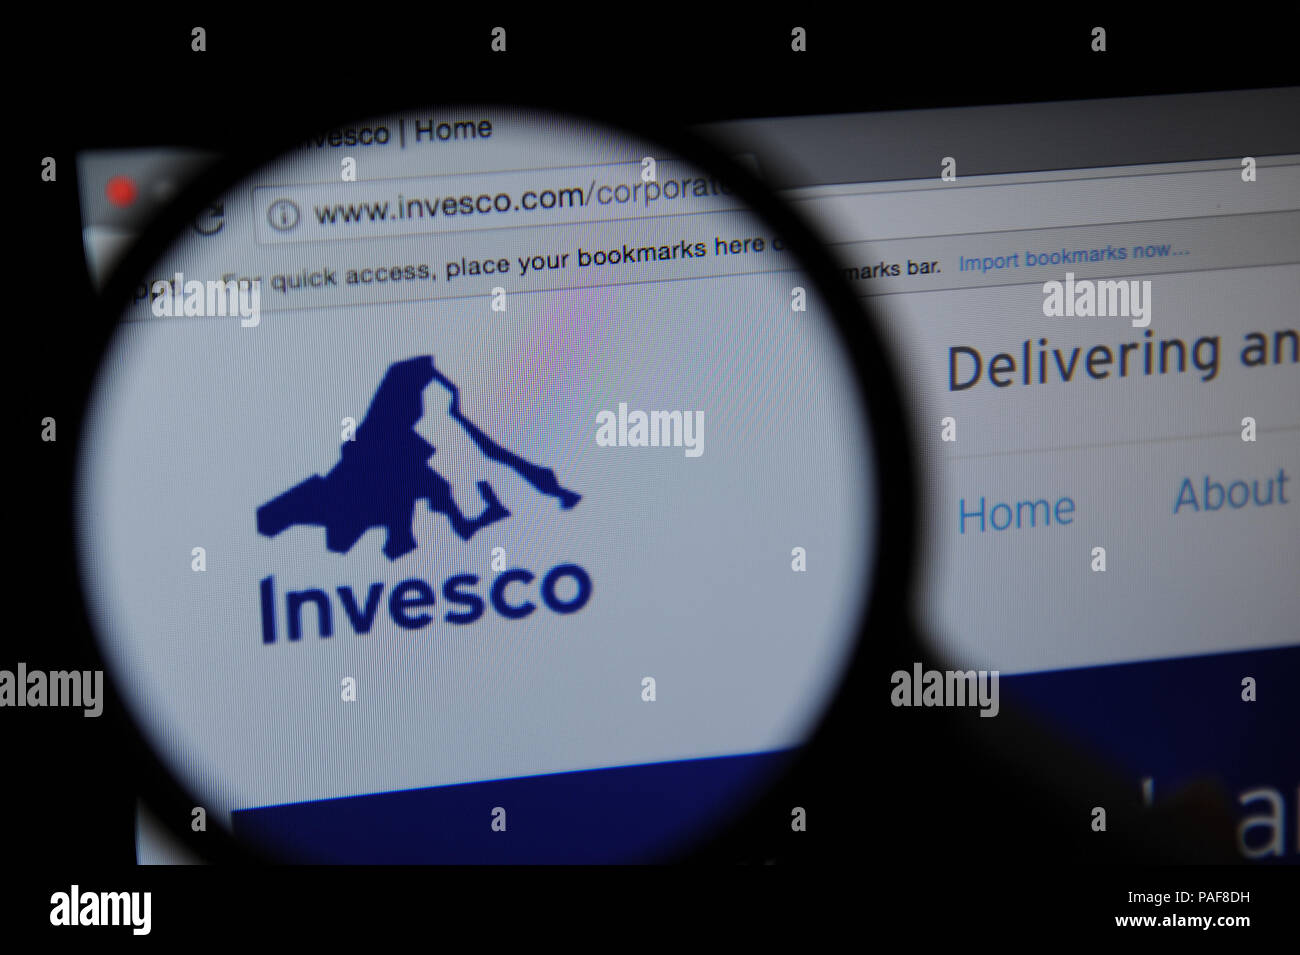 The Invesco website seen through a magnifying glass - Stock Image